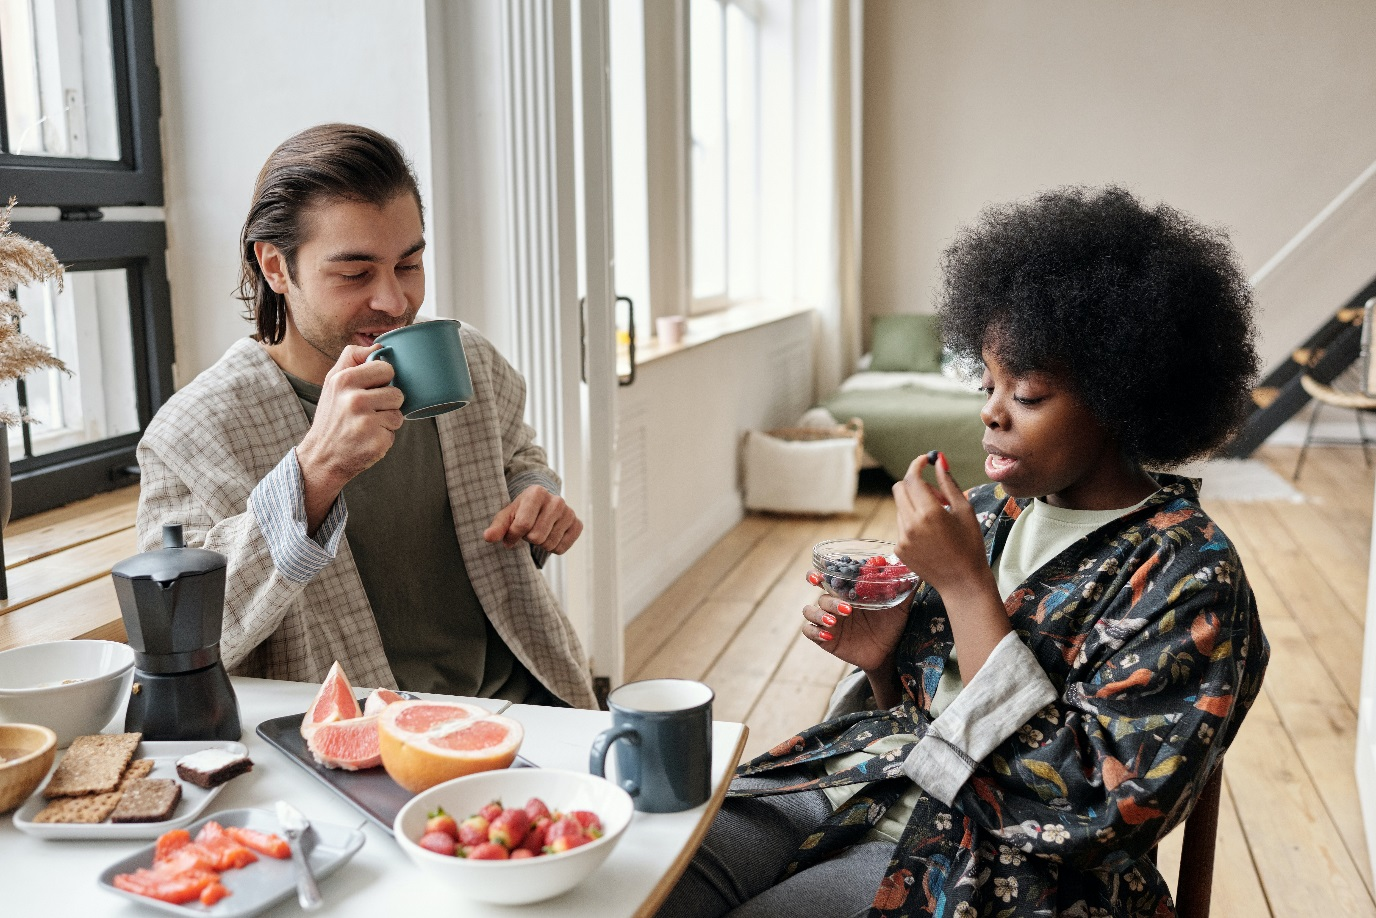 Eating and drinking slowly can improve healthy life